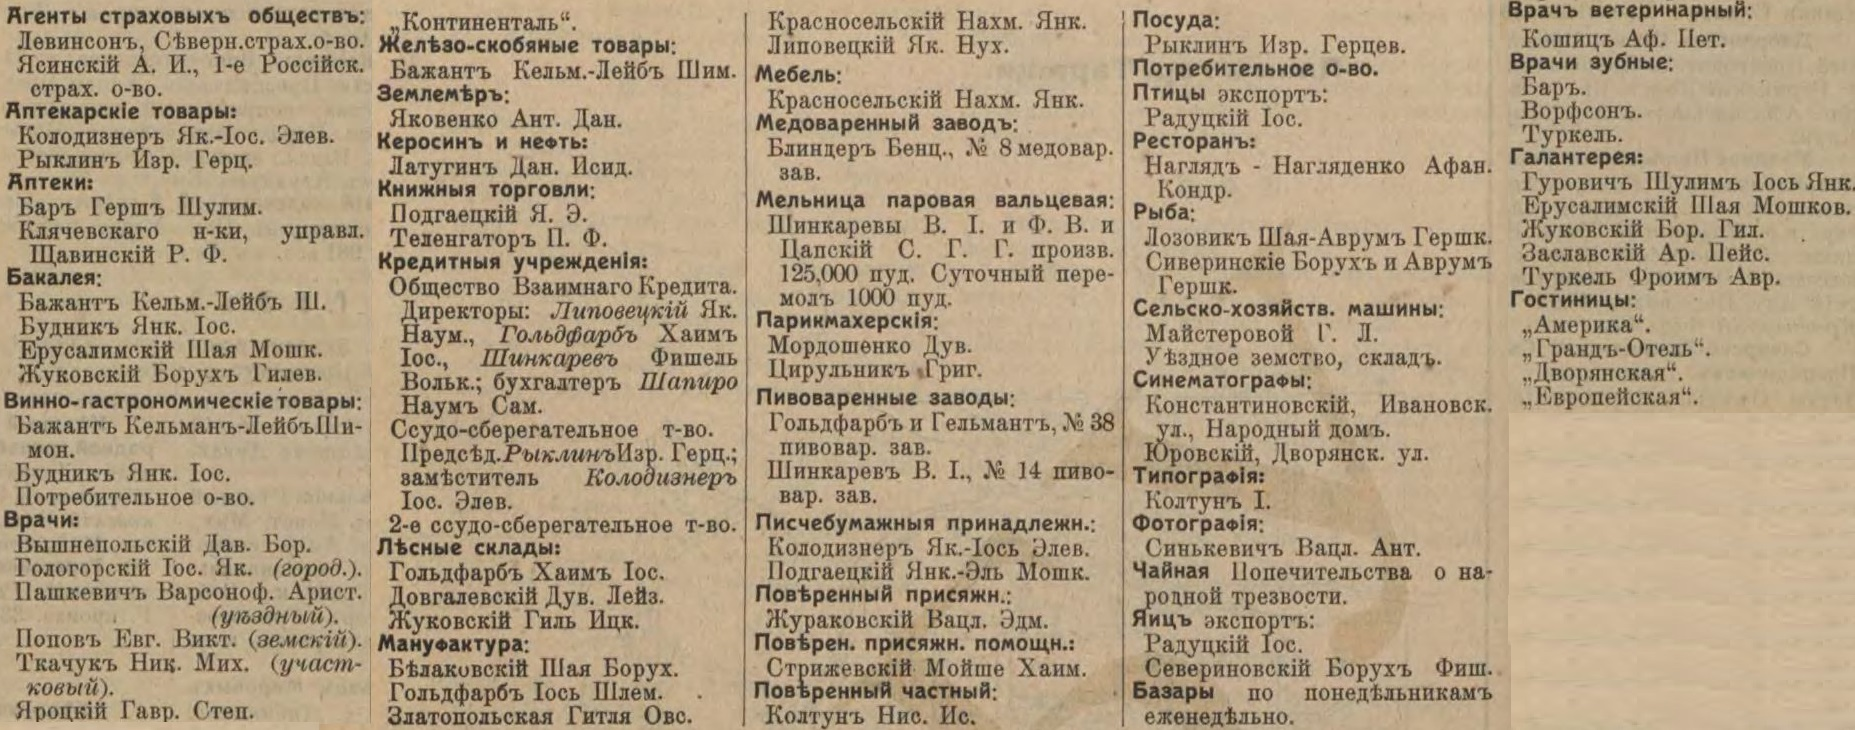 Tarashcha entrepreneurs list from Russian Empire Business Directories by 1913